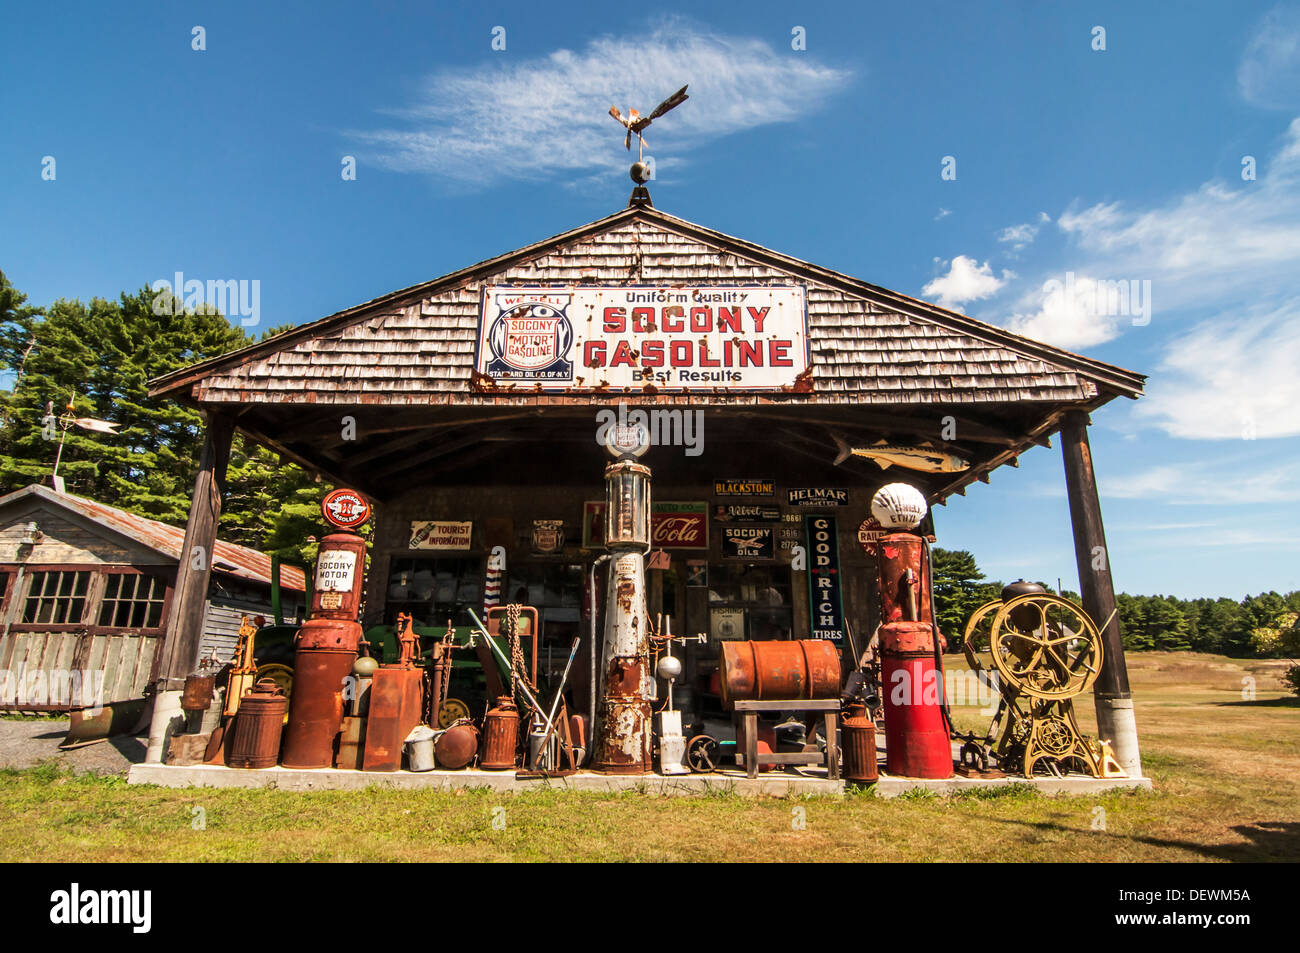 Old Fashioned Gas Station High Resolution Stock Photography And Images Alamy